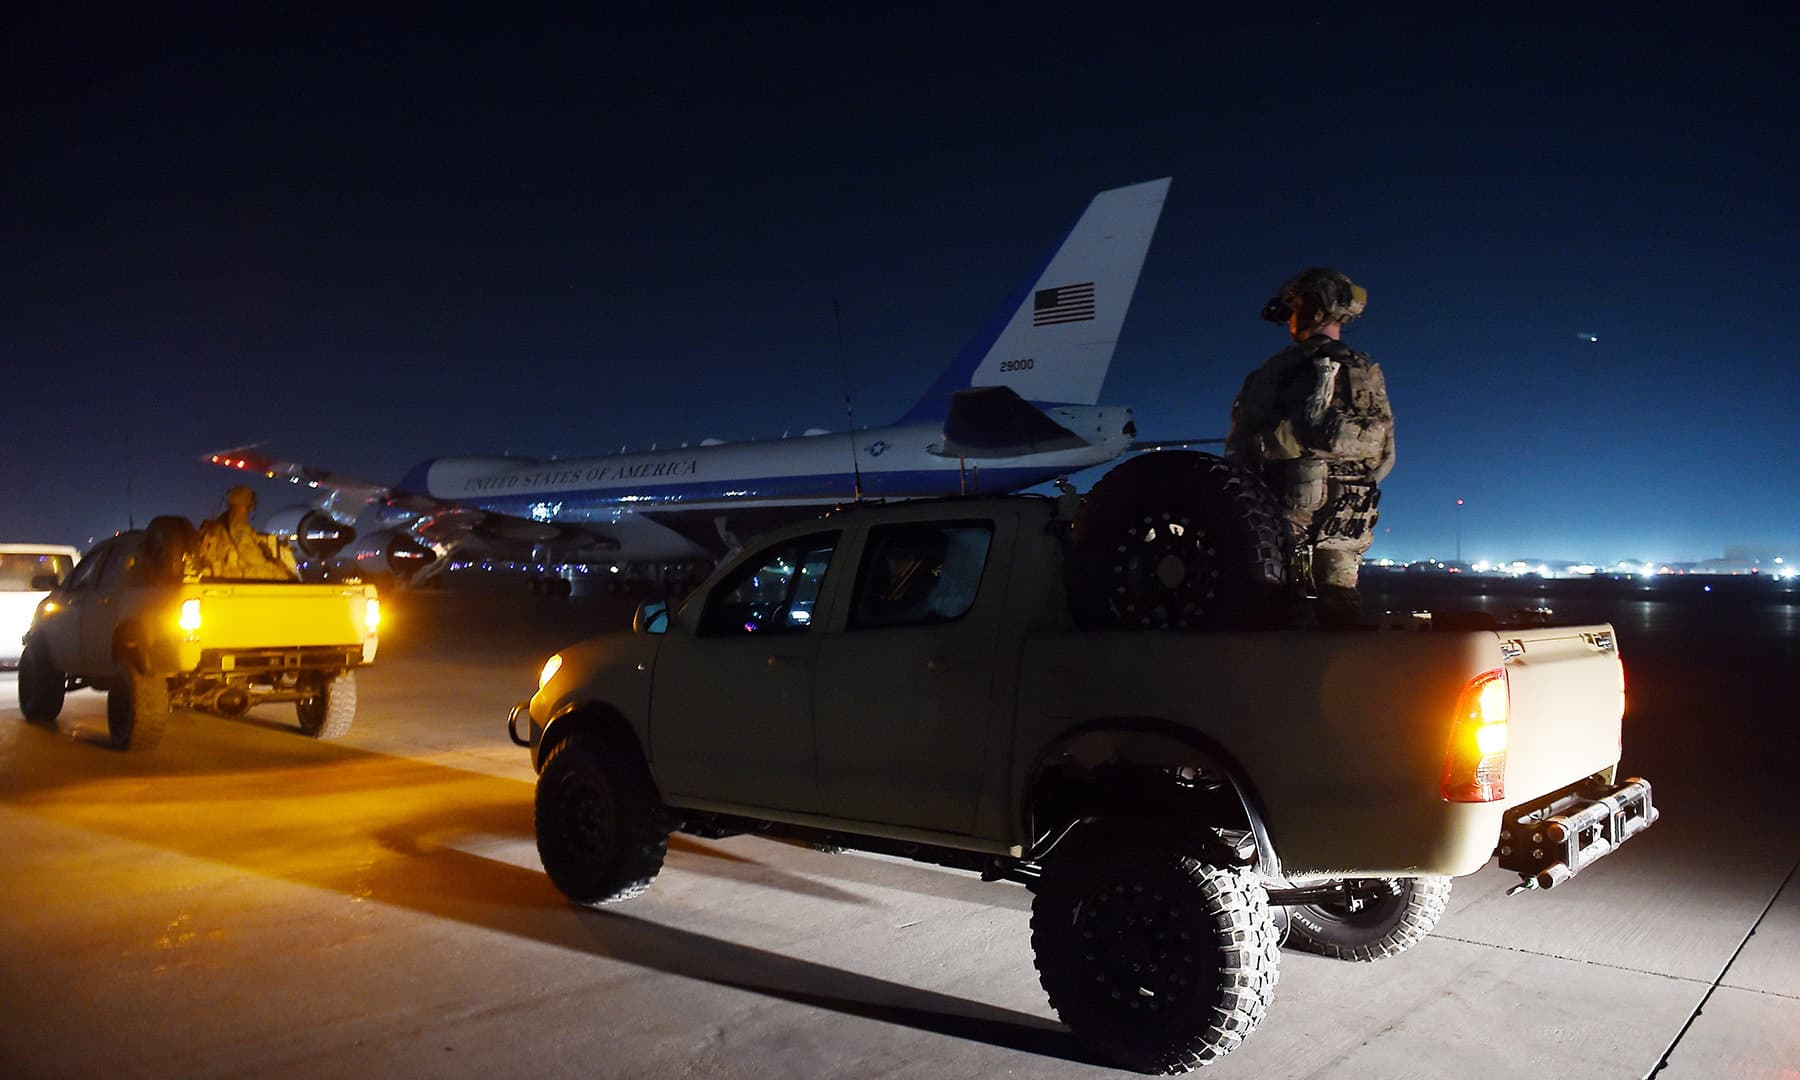 US President Donald Trump's plane Air Force One is seen on the tarmac during a surprise Thanksgiving day visit at Bagram Air Field on November 28 in Afghanistan. — AFP